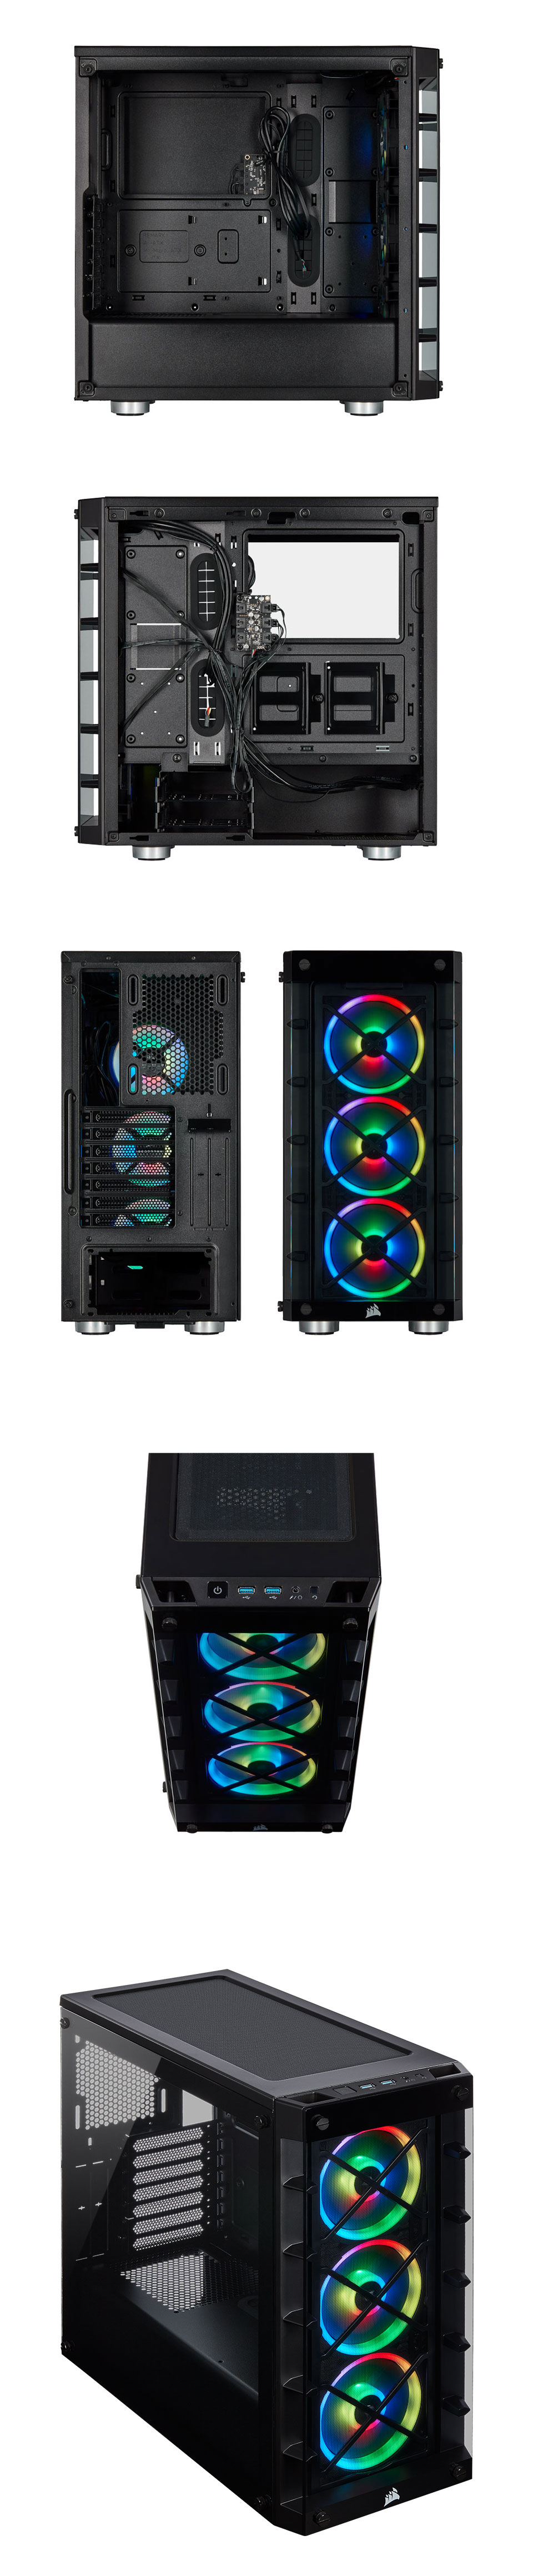 Corsair iCUE 465X RGB Tempered Glass Case Black product